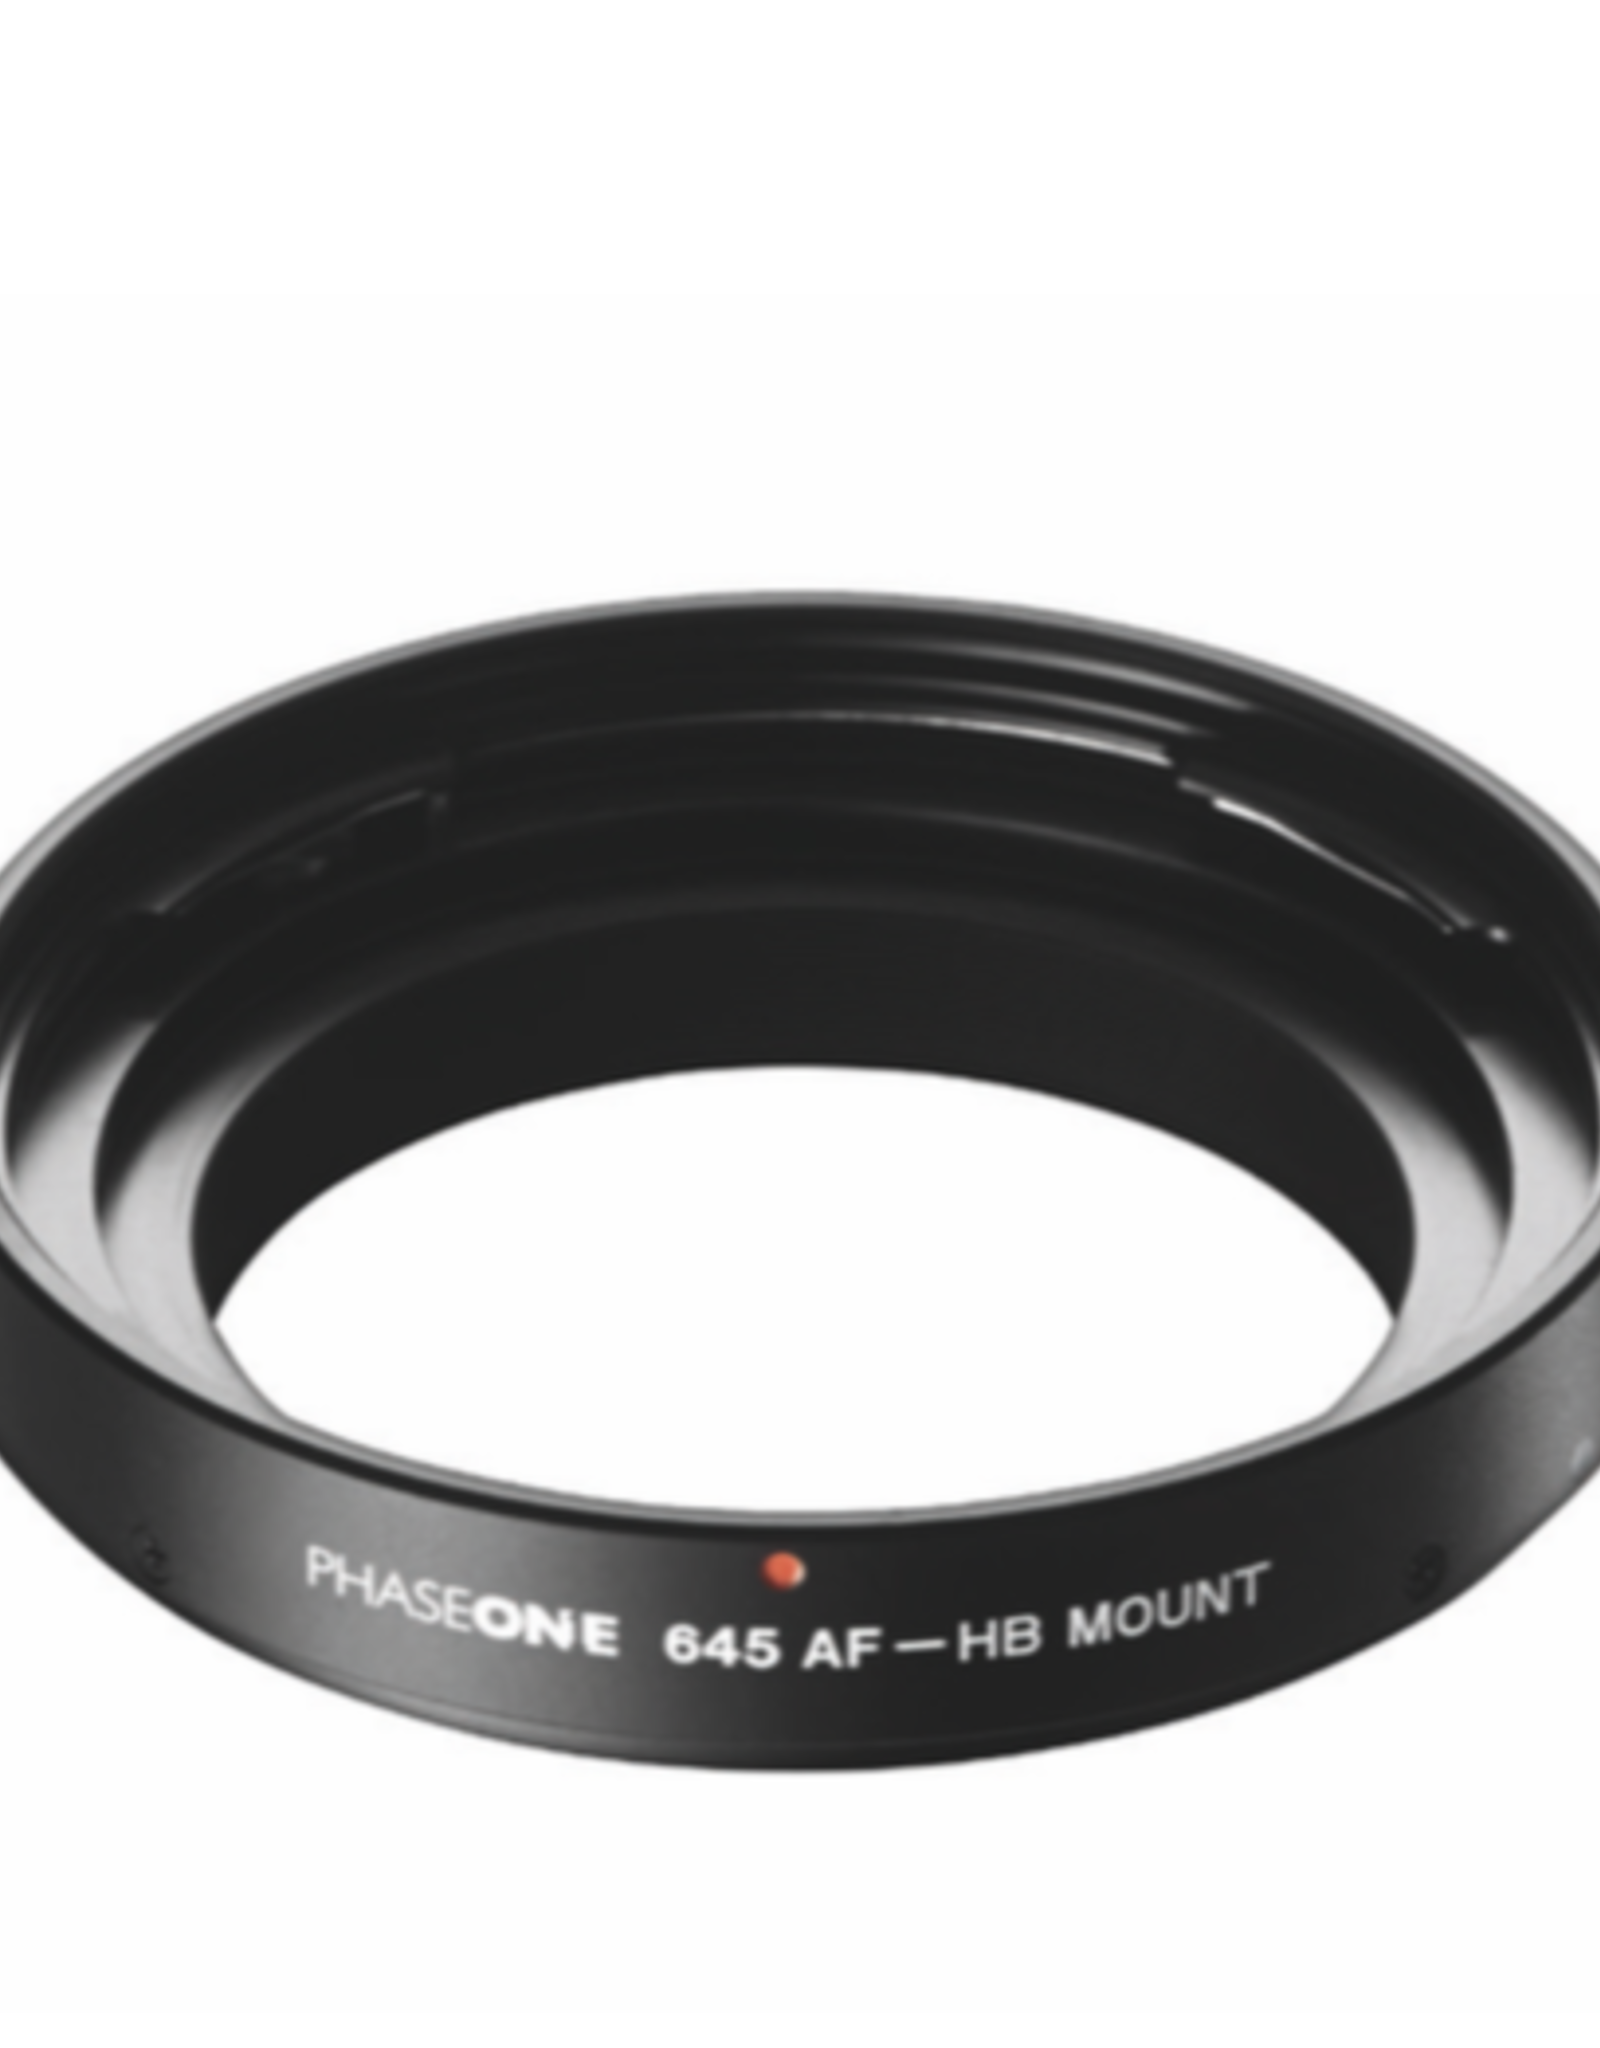 Phase One Phase One Multimount lens adaptor for Hasselblad V lenses